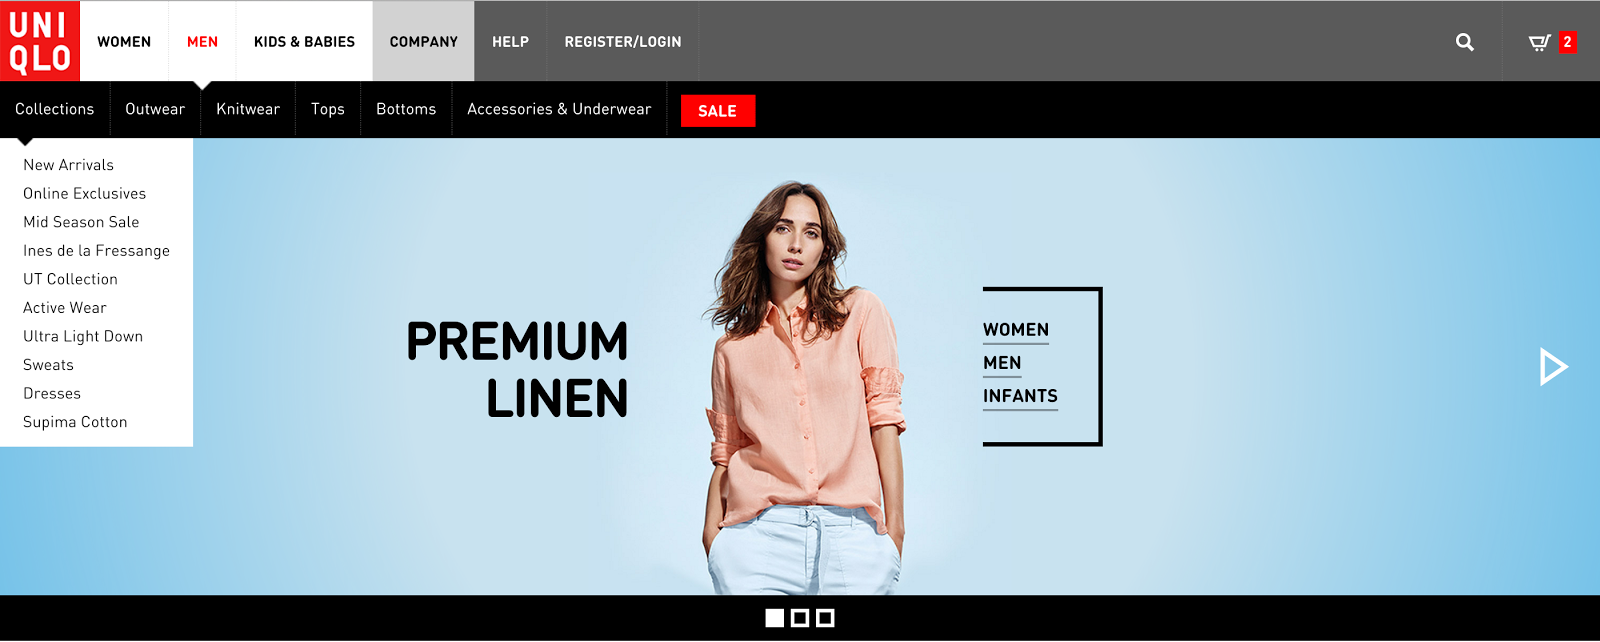 Timothy Noah's responsive redesign of UNIQLO